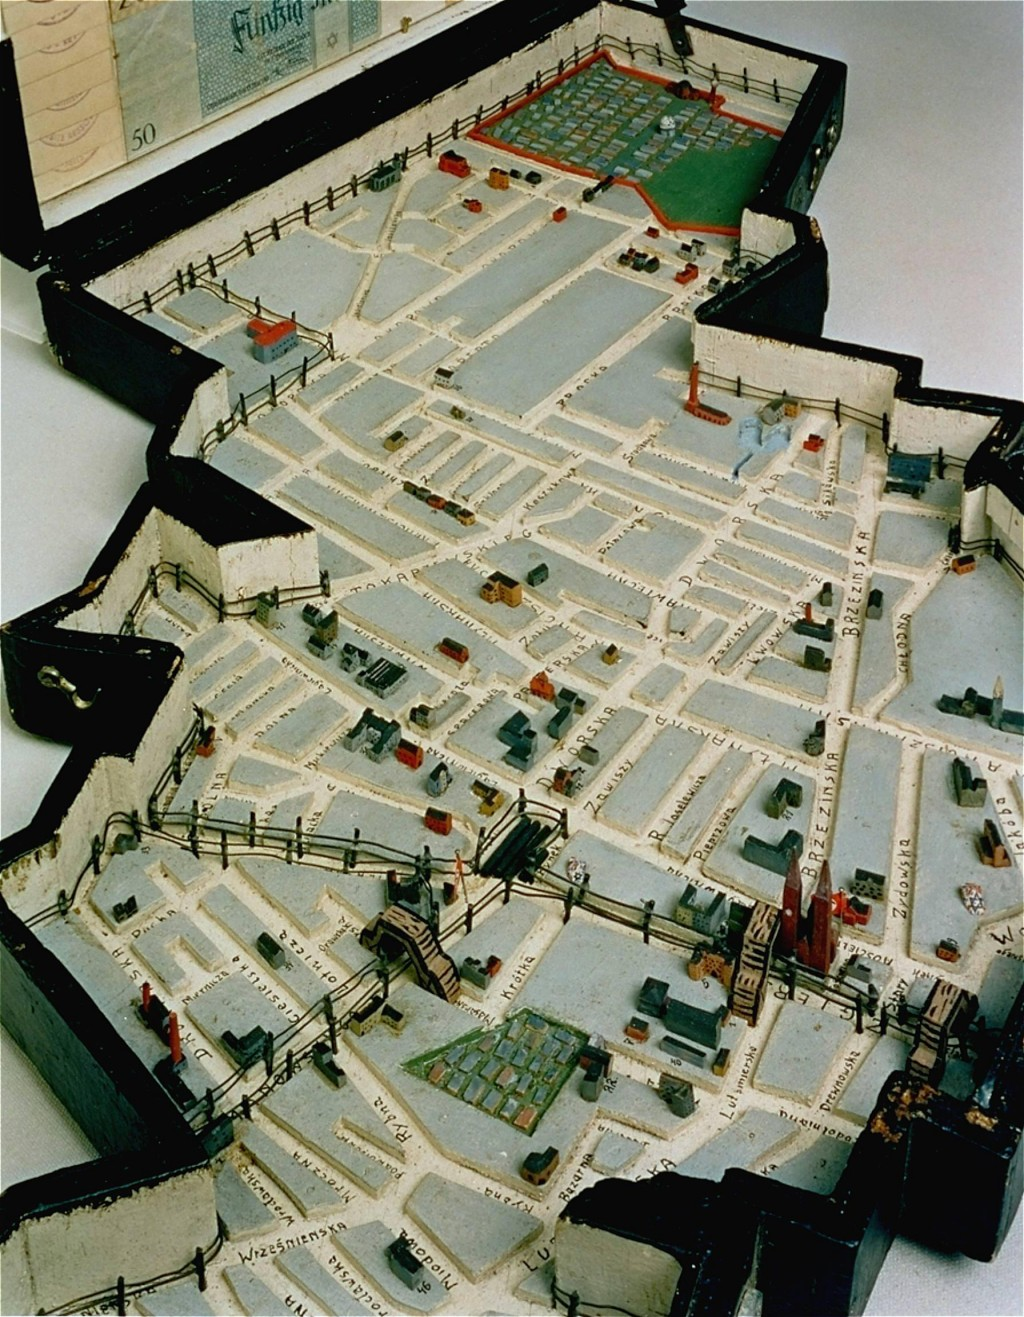 Lodz ghetto model [LCID: 2004gcax]